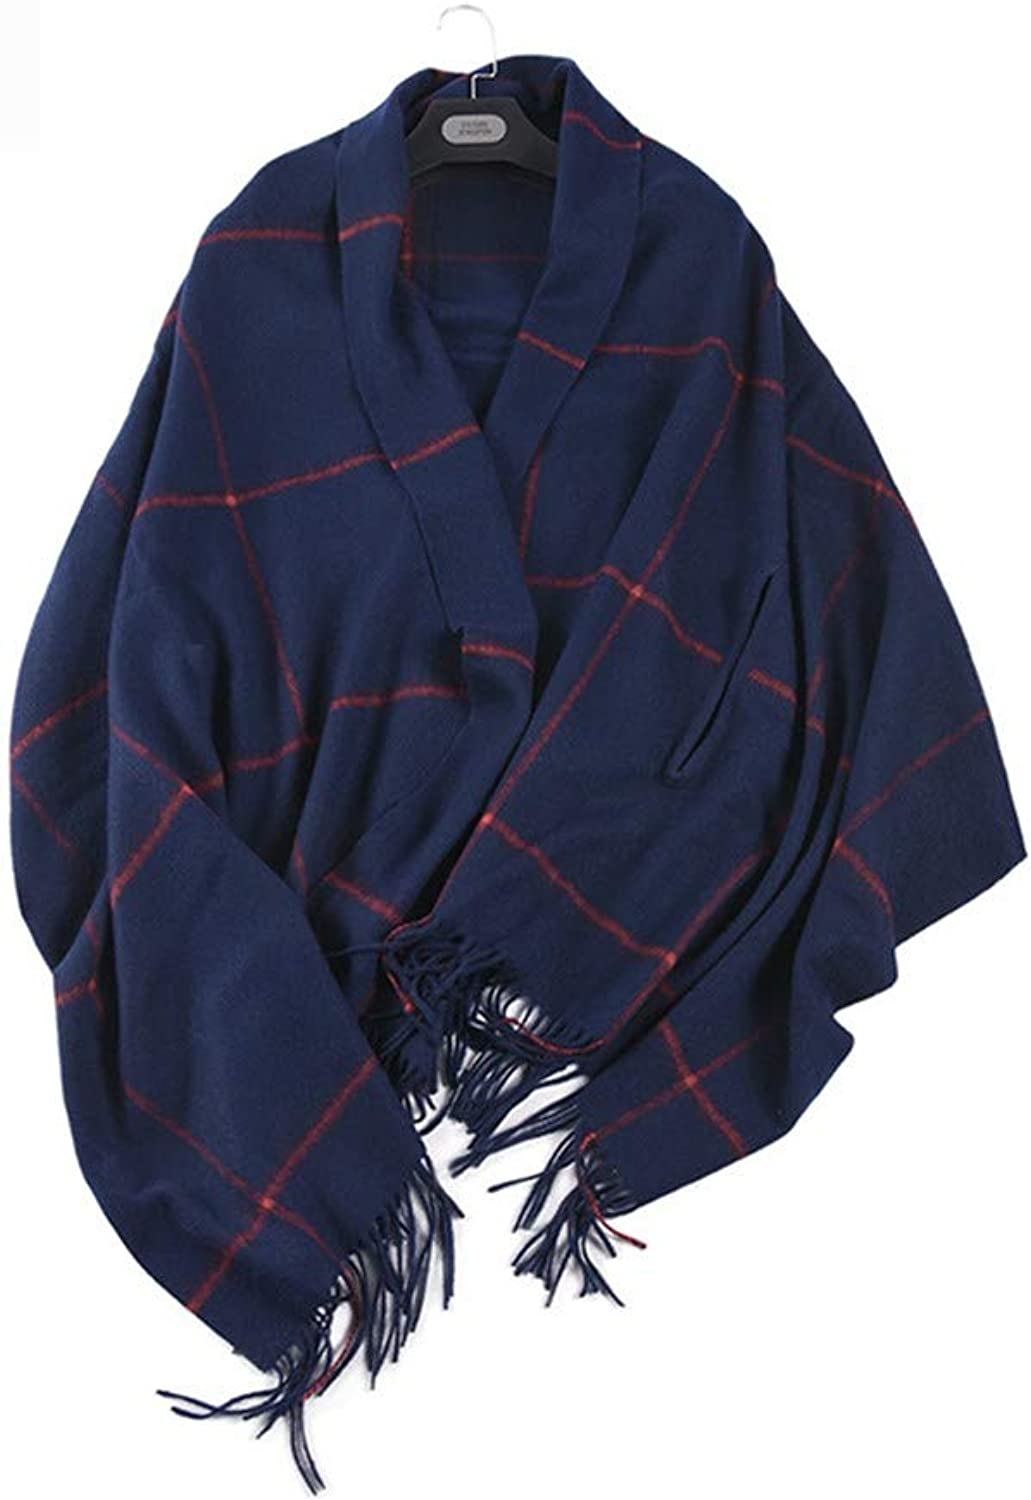 AFBLR shawl cloak Wool autumn and winter thick ladies square large shawl, Tibetan bluee